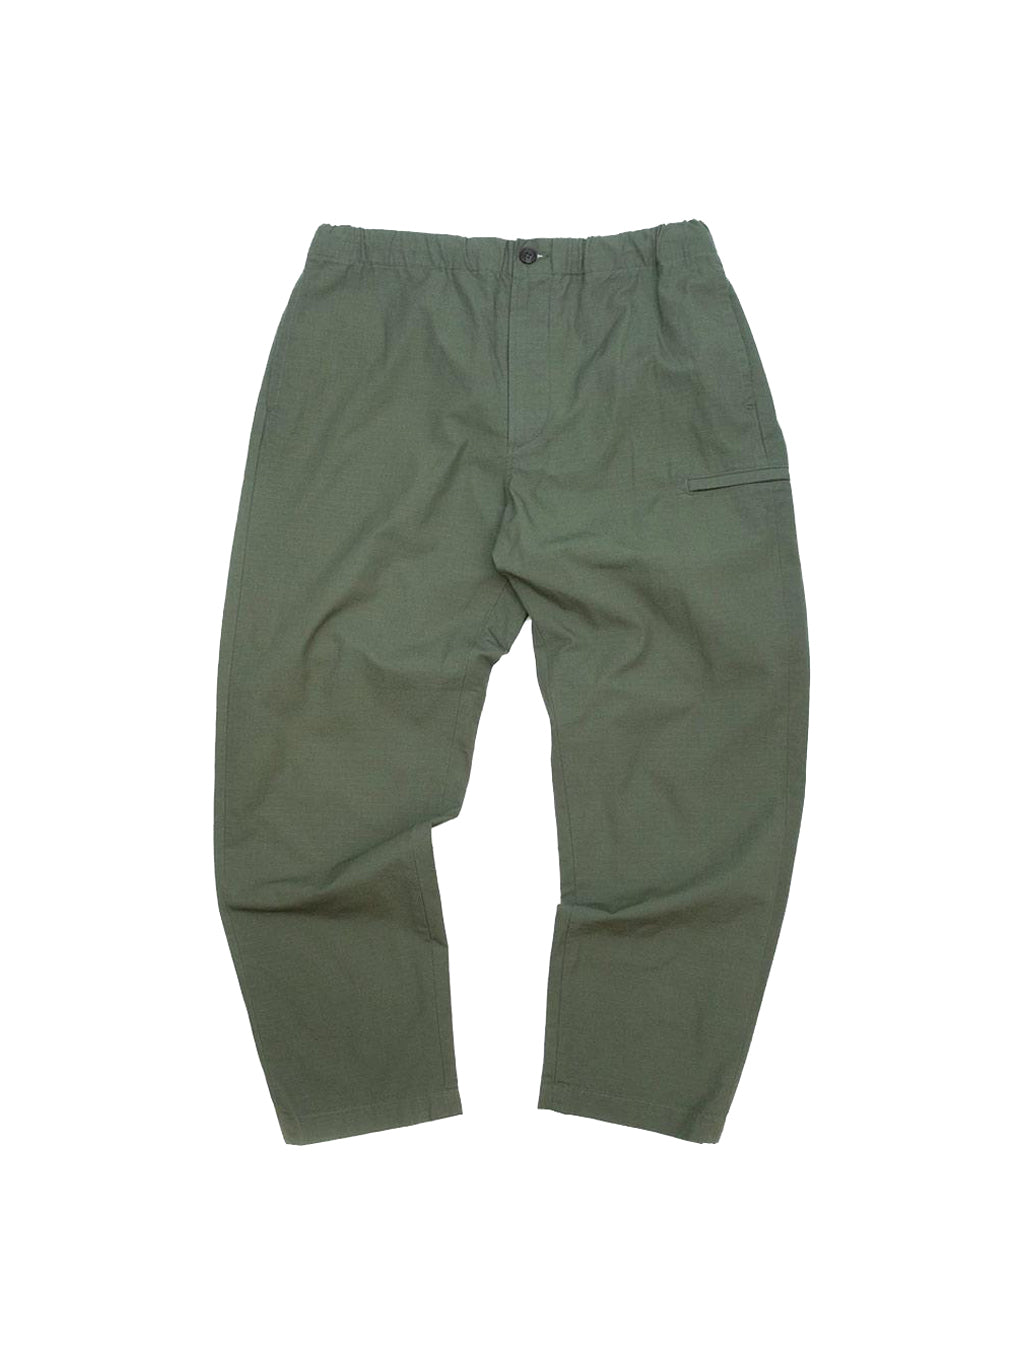 Olive Cotton Ripstop Drawstring Pants